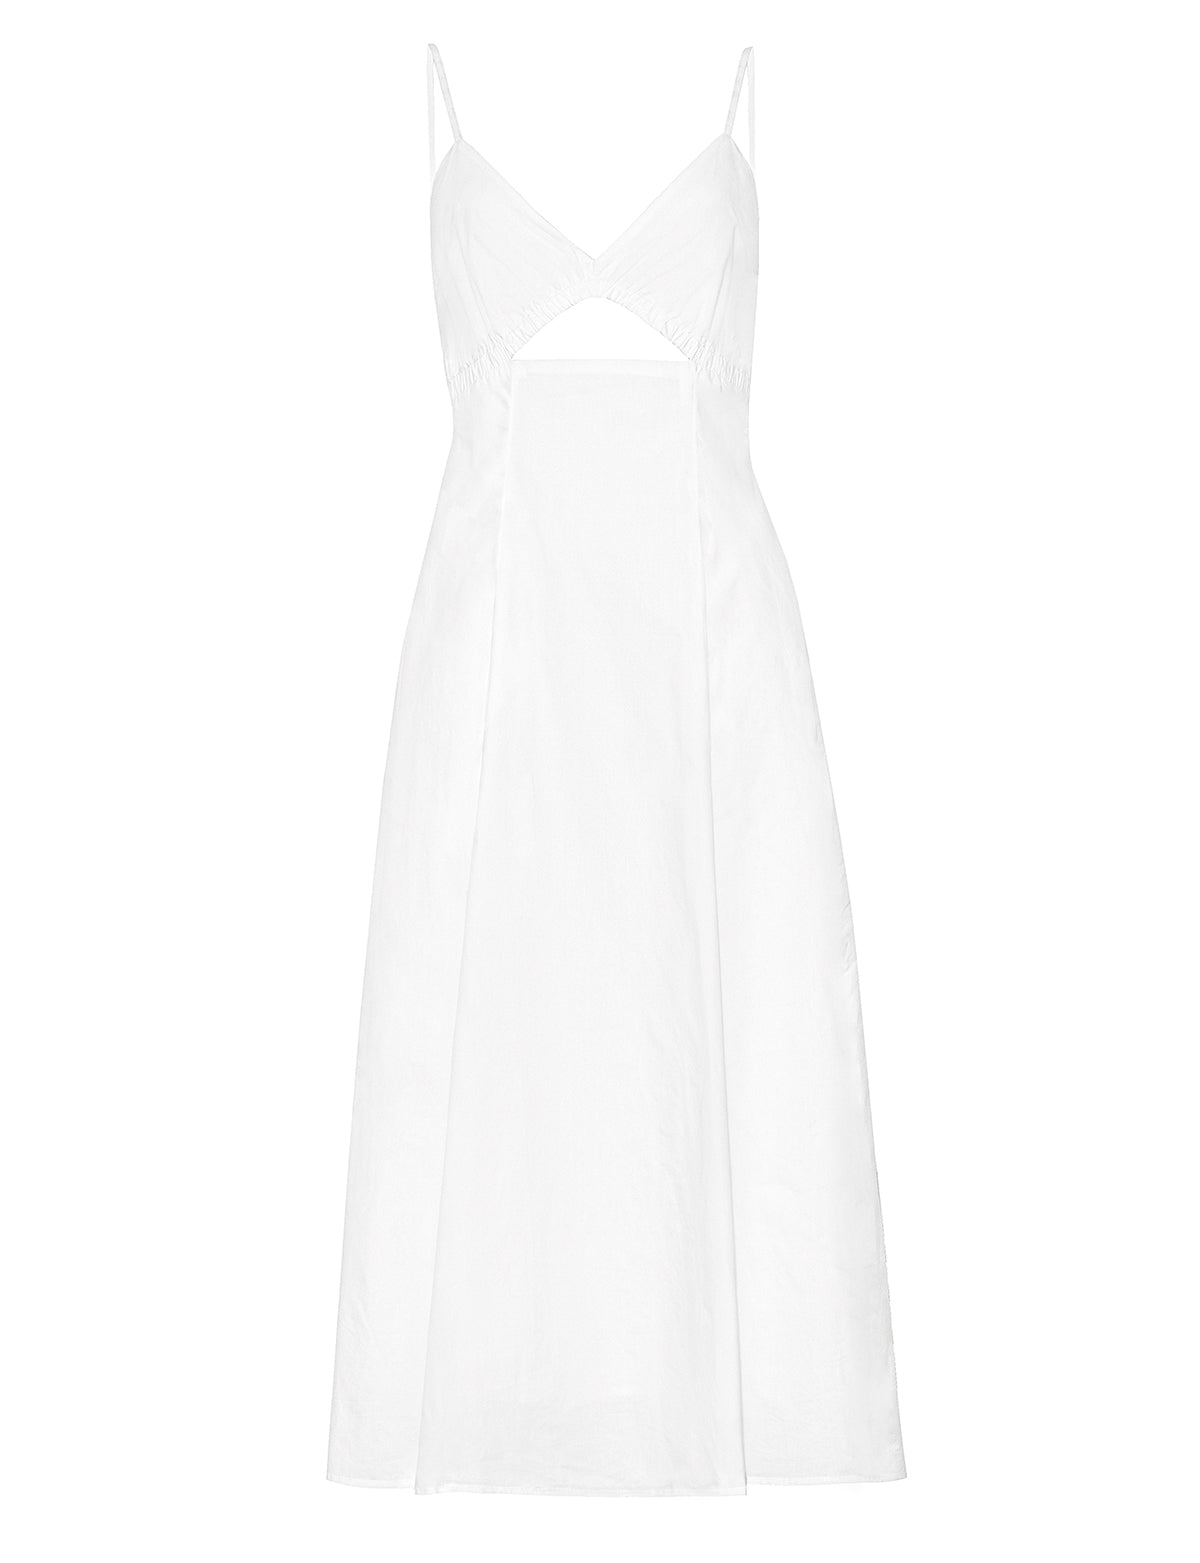 Santorini White Cut Out Dress